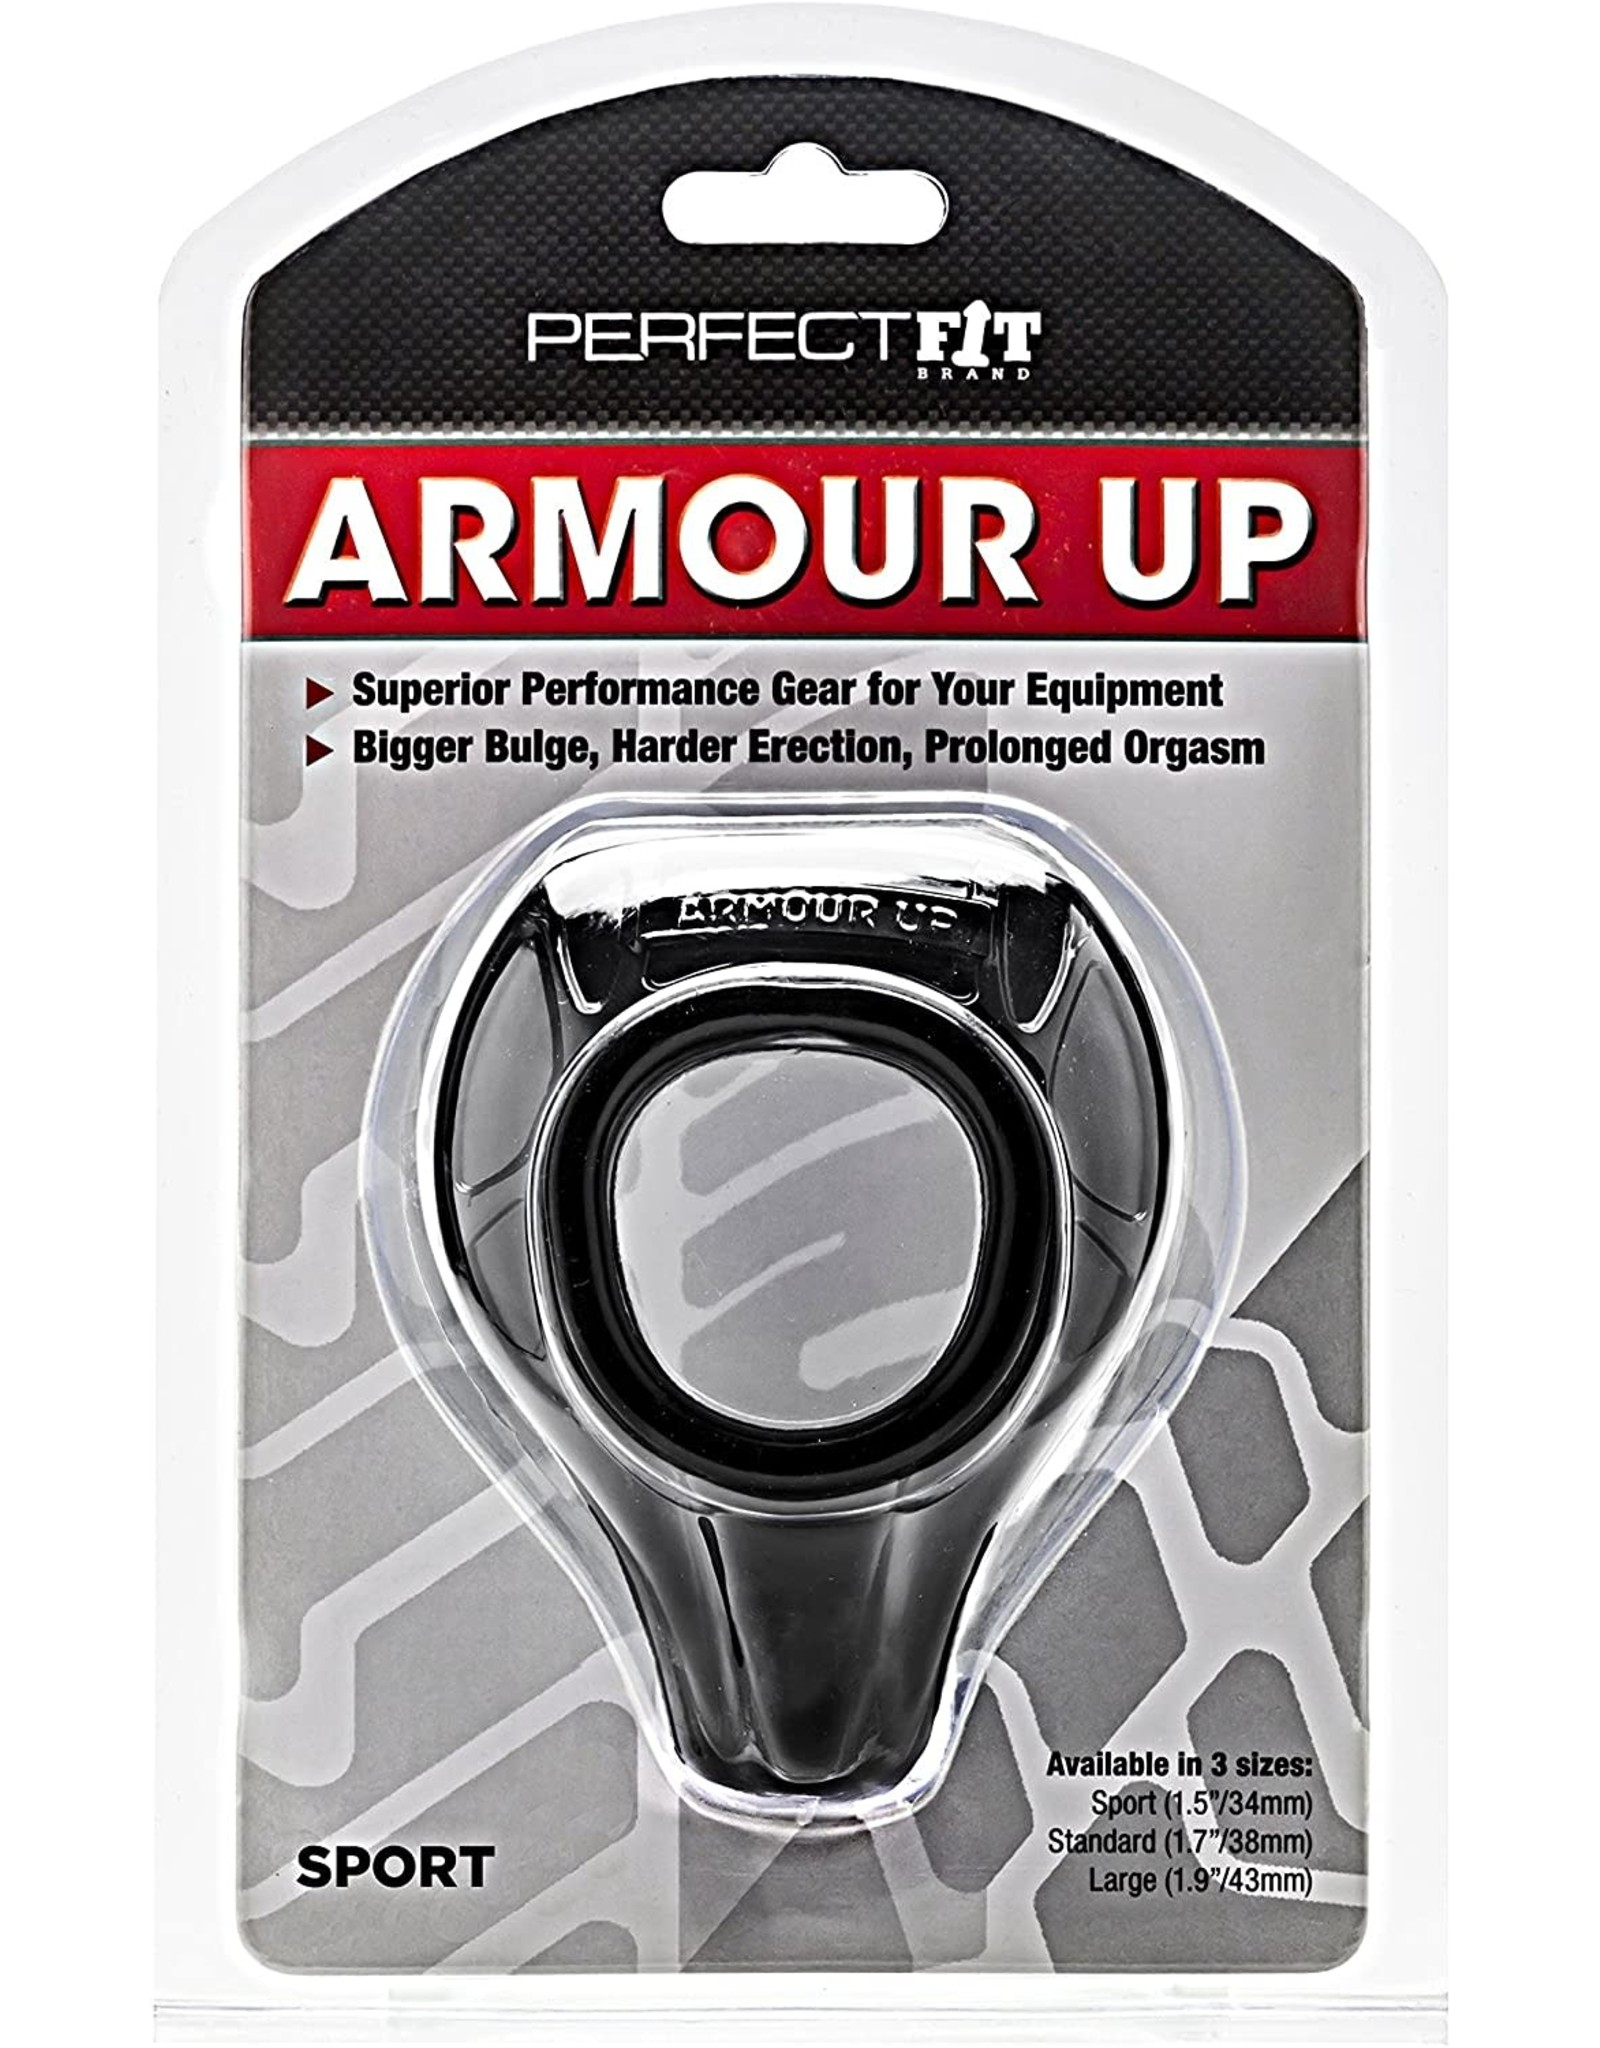 Perfect Fit Brand Perfect Fit Brand Armour Push Sport Black